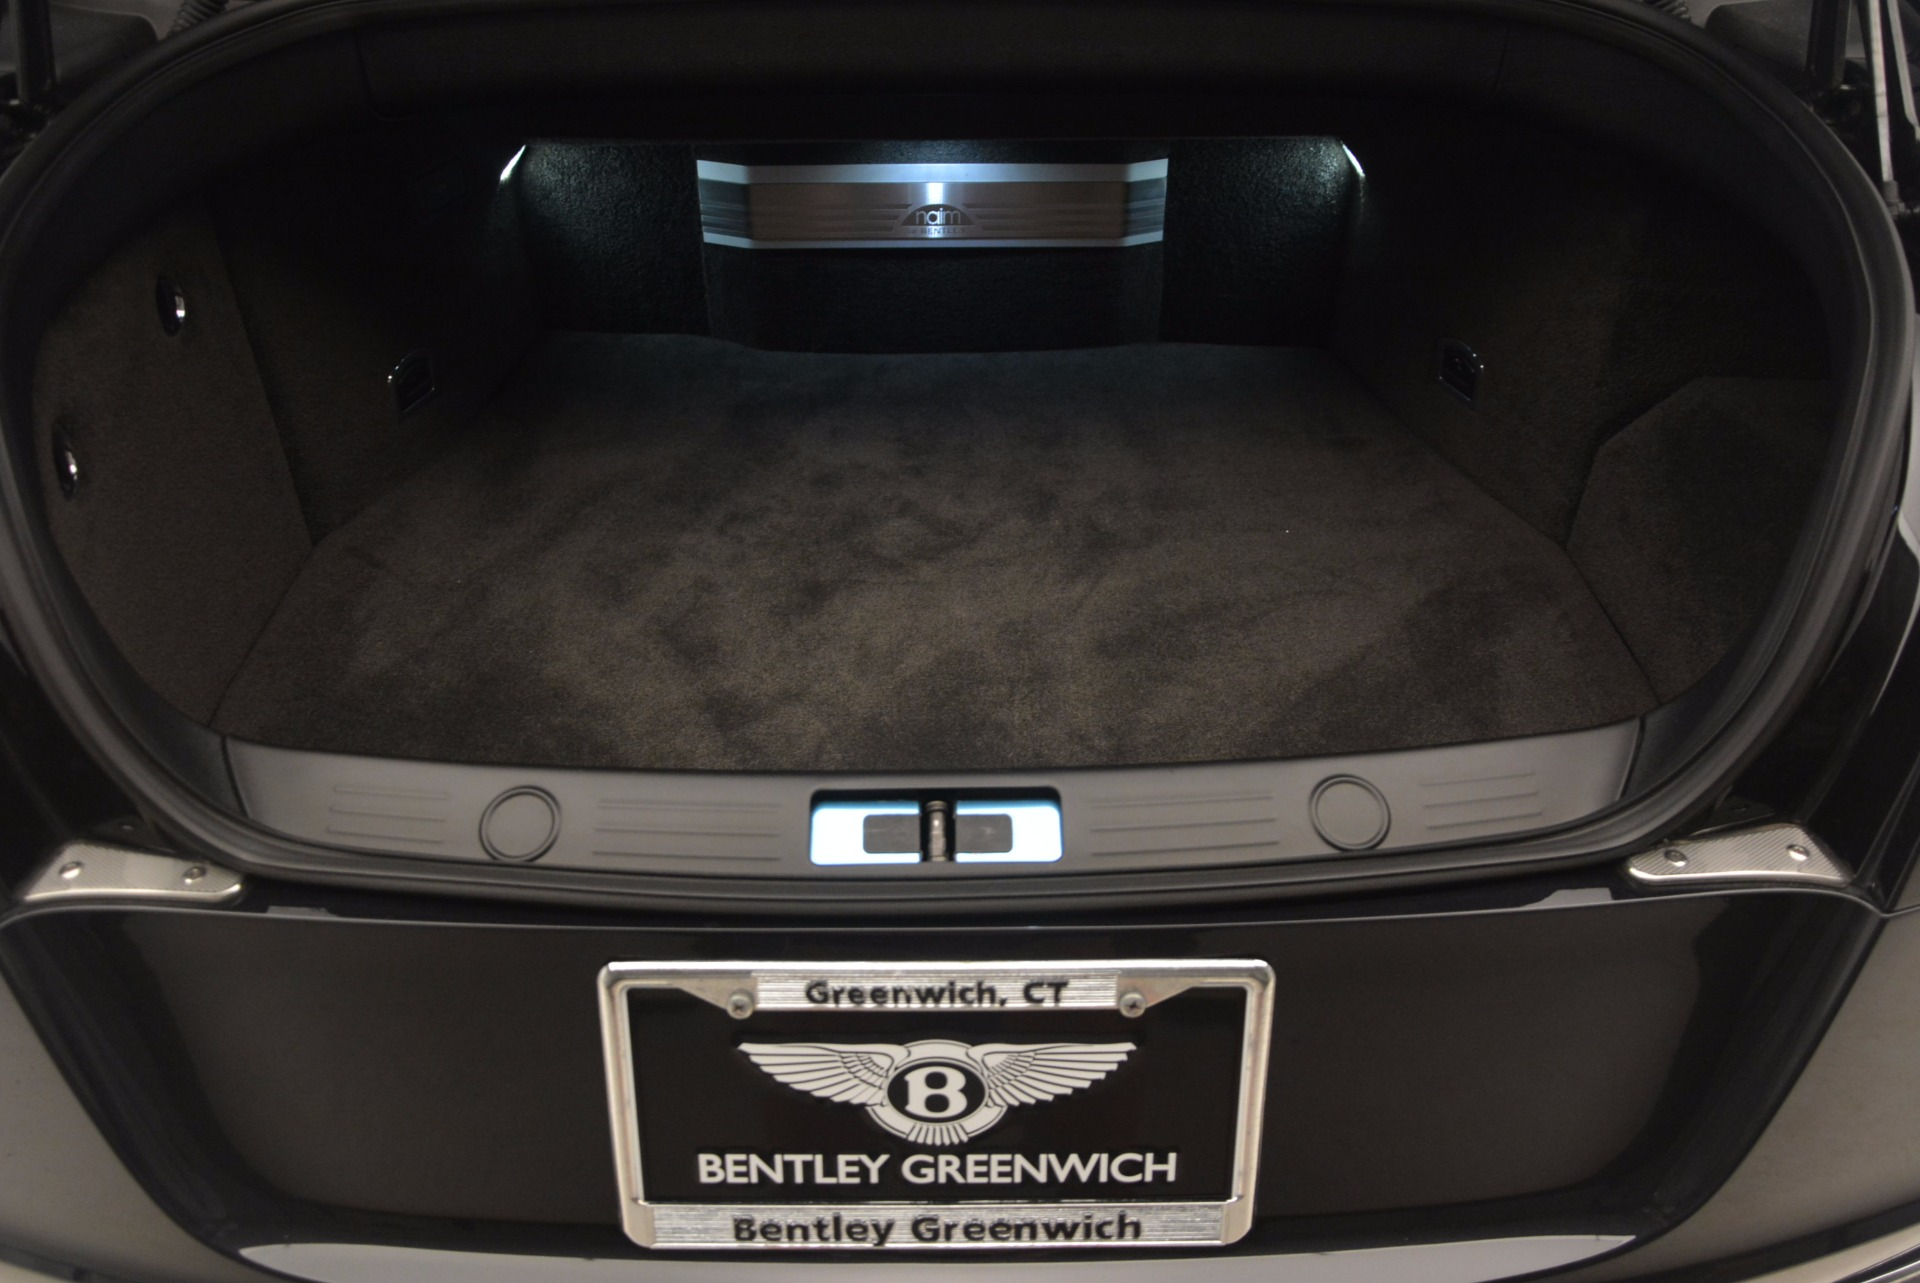 Used 2012 Bentley Continental GT W12 Convertible For Sale In Westport, CT 1104_p51